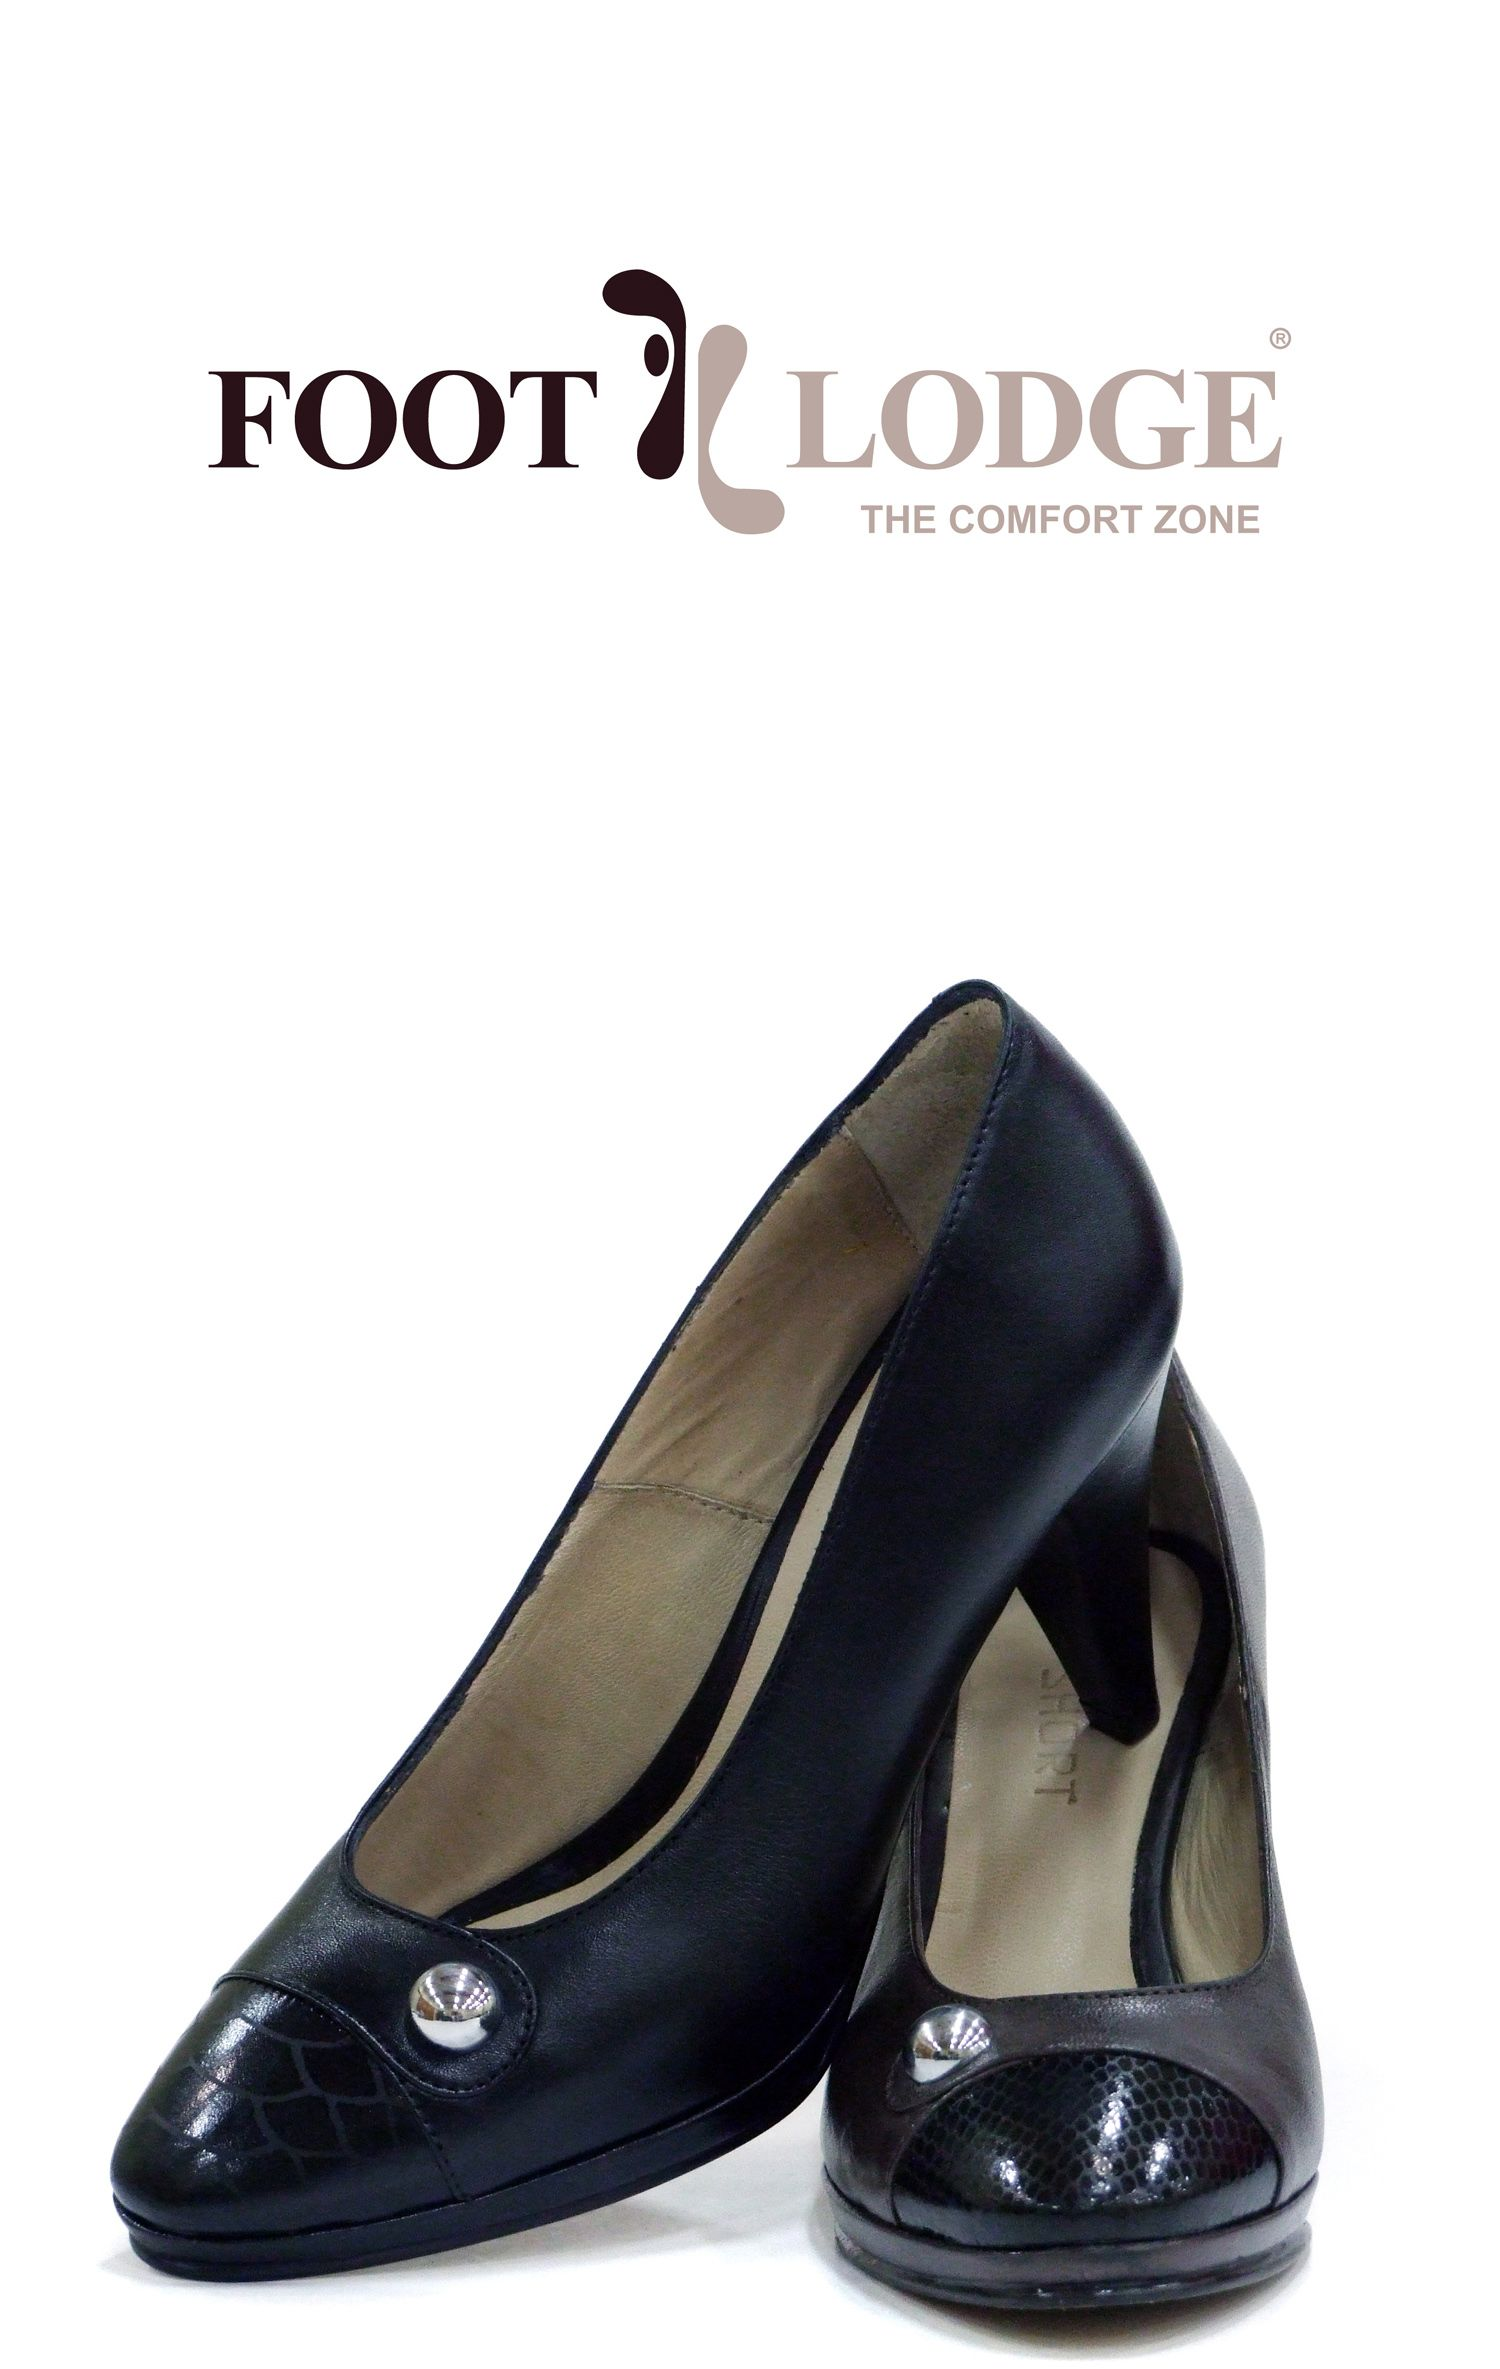 Foot Lodge Leather Heeled Shoes with strass for Women. Code: 12-31